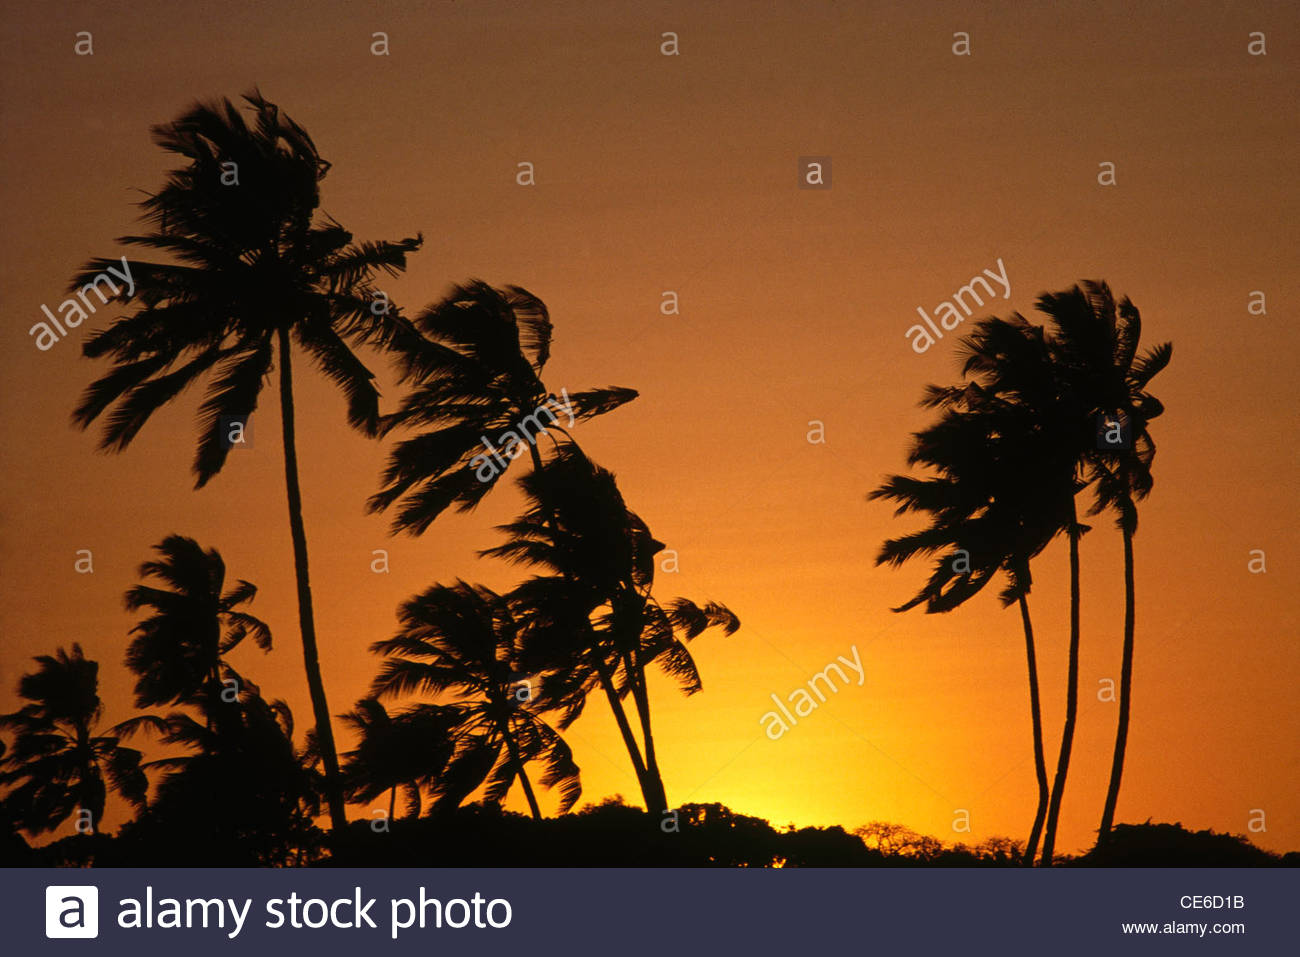 wind windy breeze breezy palm trees at sunset kerala india - Stock Image